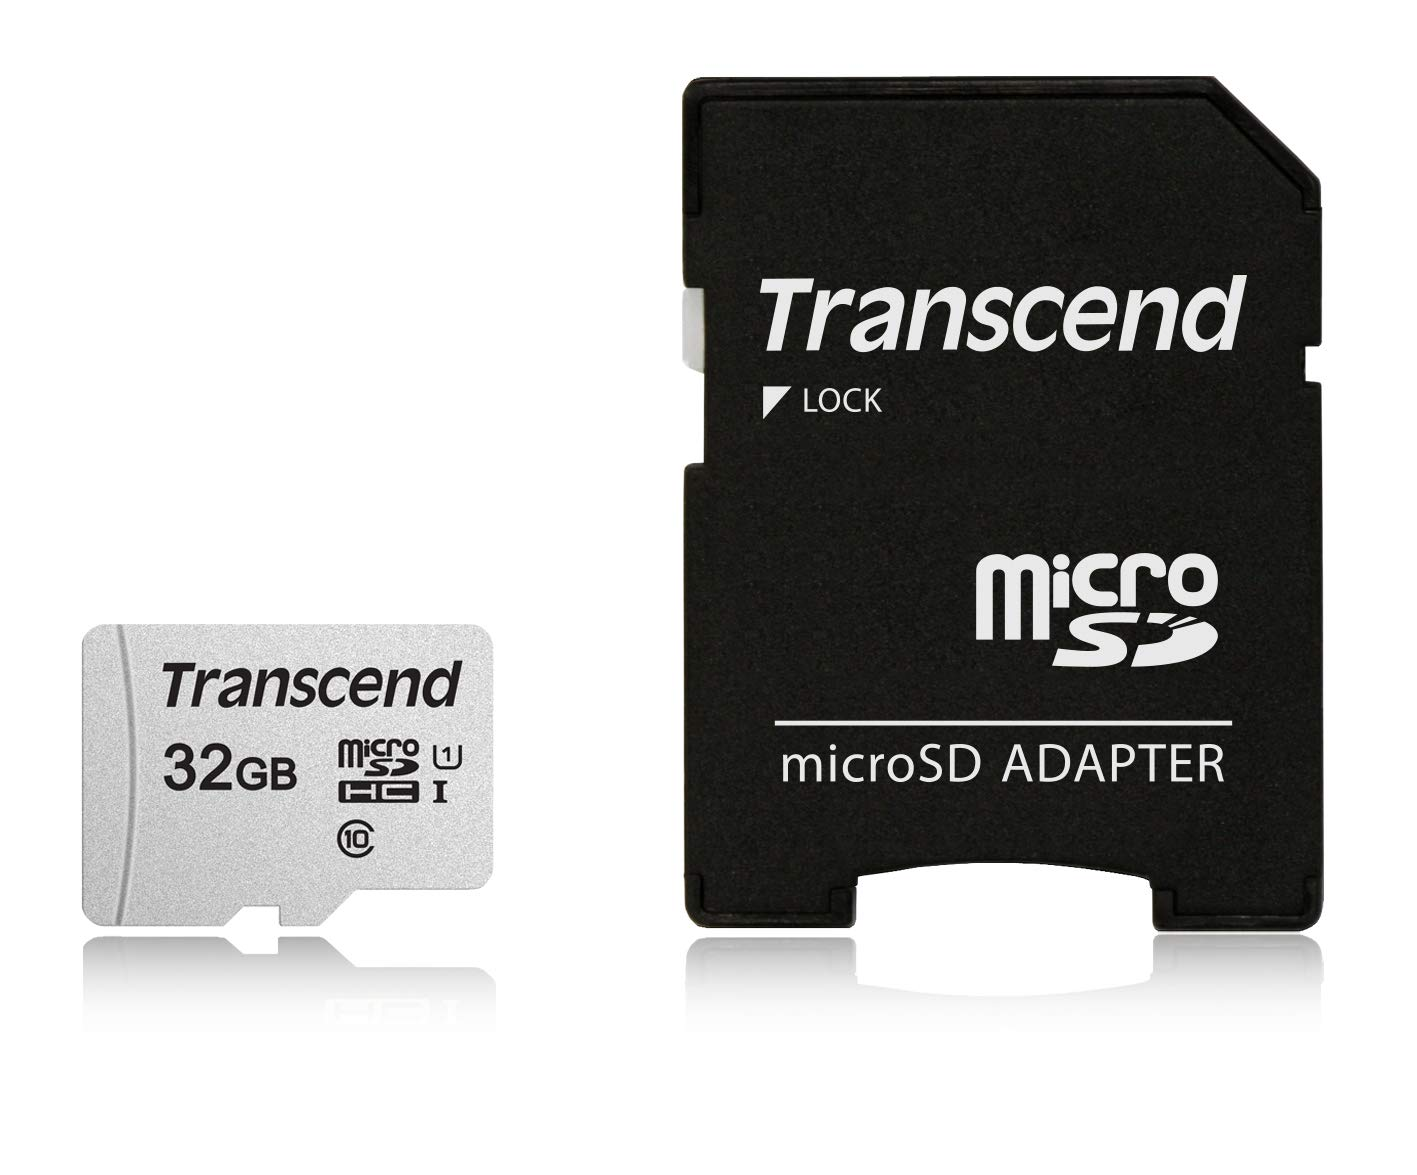 【Amazon.co.jp限定】Transcend microSDHCカード 32GB UHS-I Class10 Nintendo Switch/3DS 動作確認済 TS32GUSD300S-AE